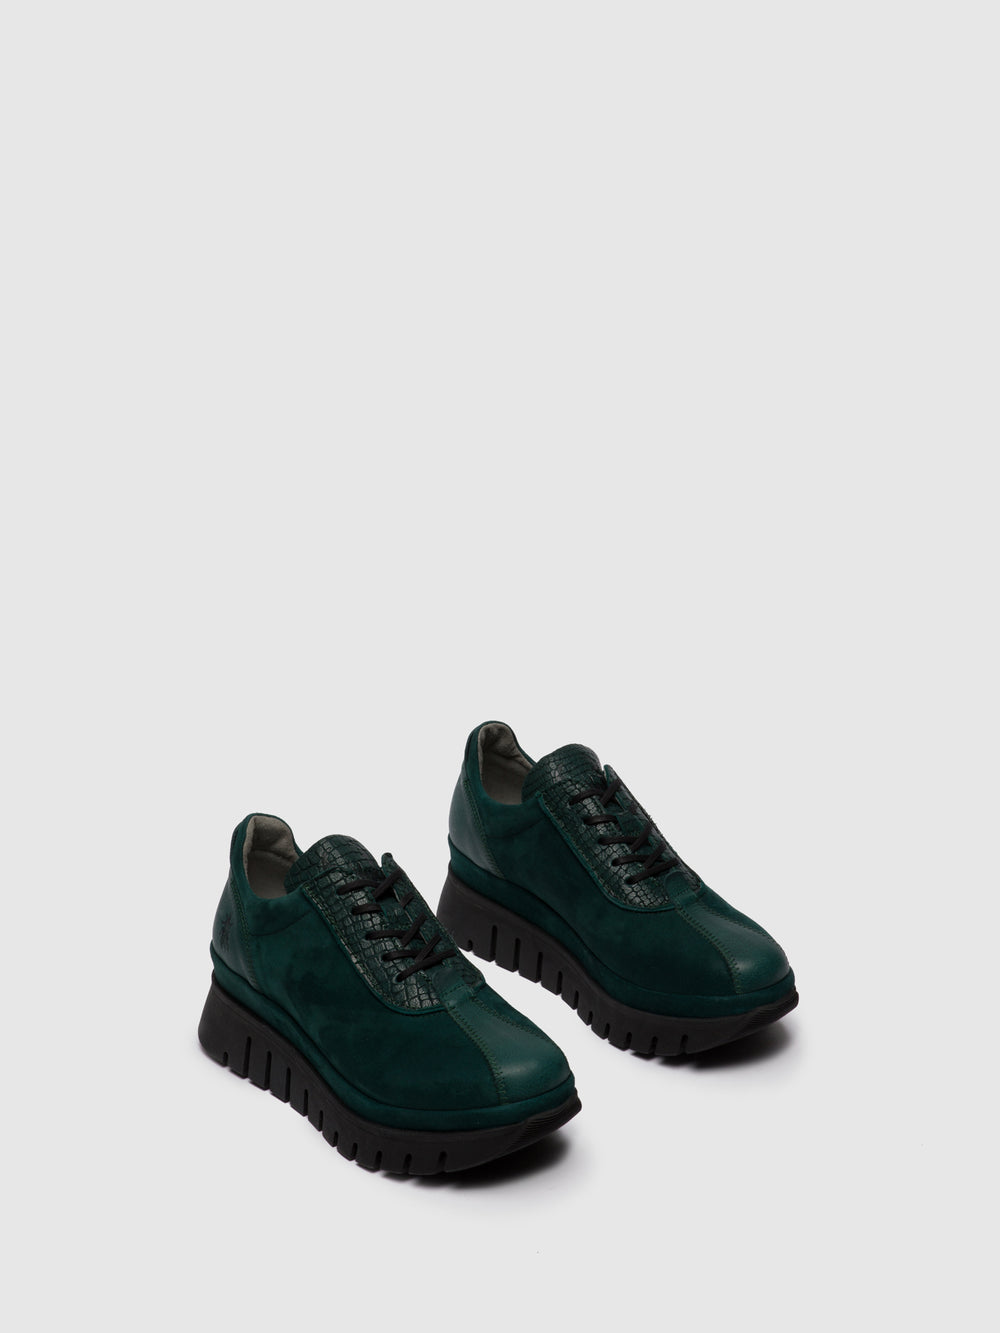 Lace-up Trainers BESI203FLY VERONA/CROCO/SILKY GREEN FOREST